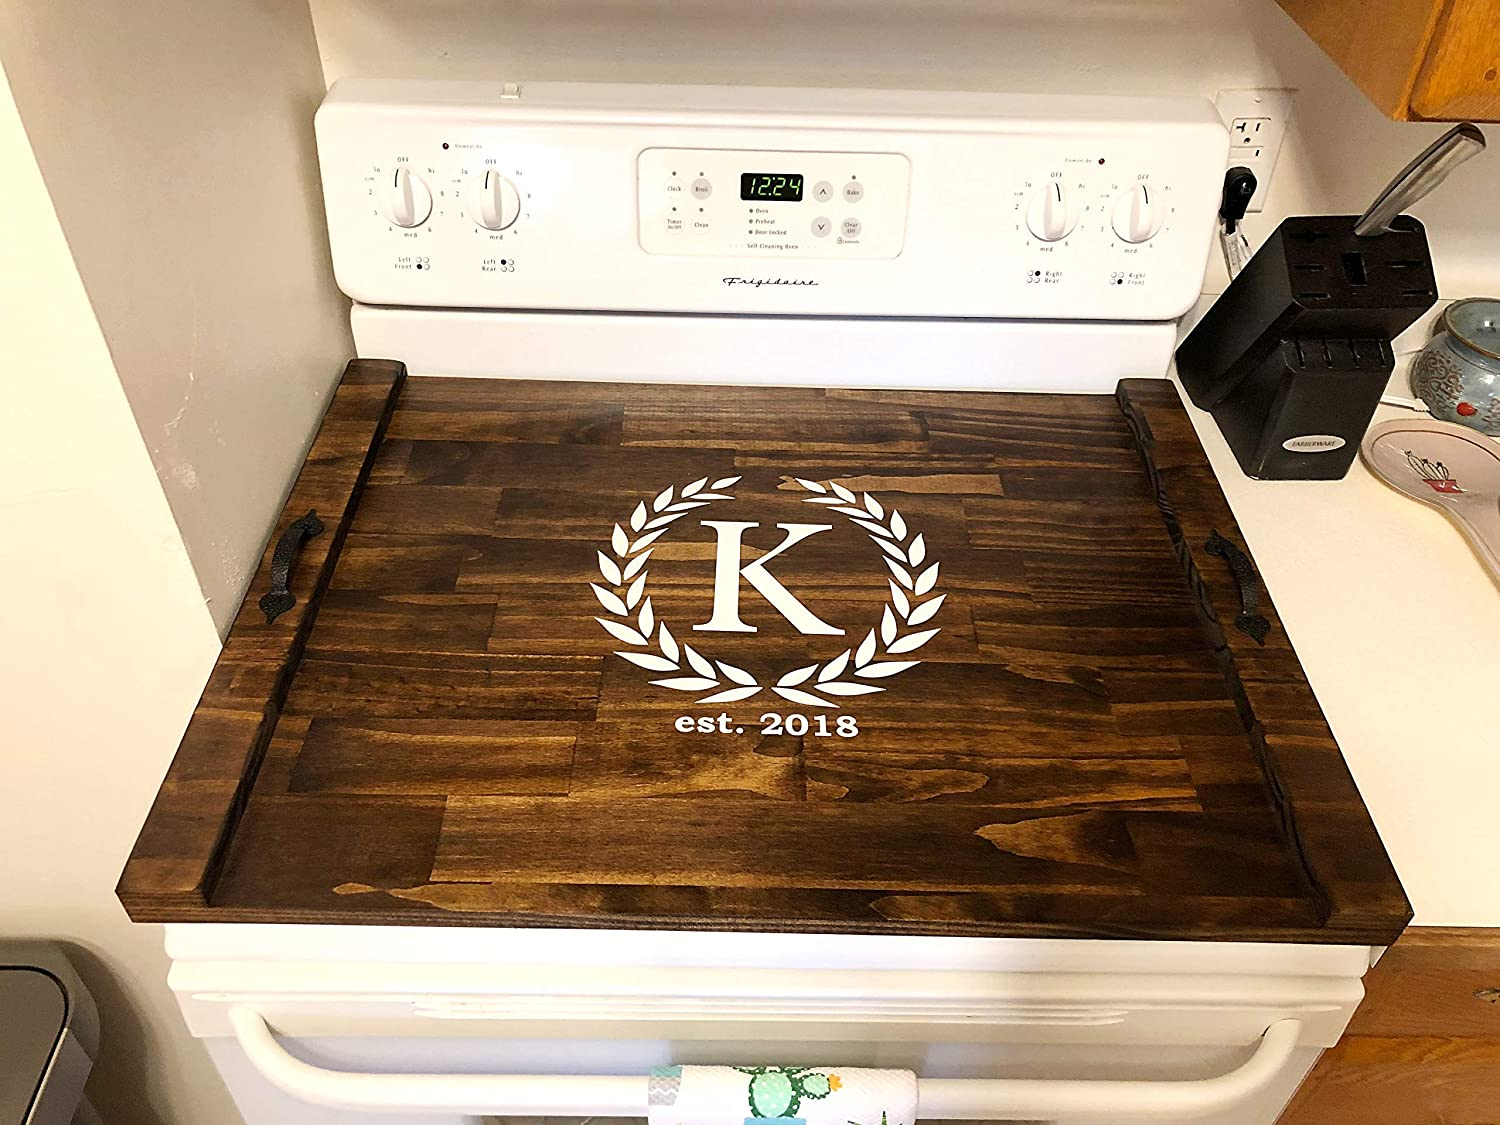 Rustic Stove Cover Wood Inexpensive Tray Top 40% OFF Cheap Sale For Personalized